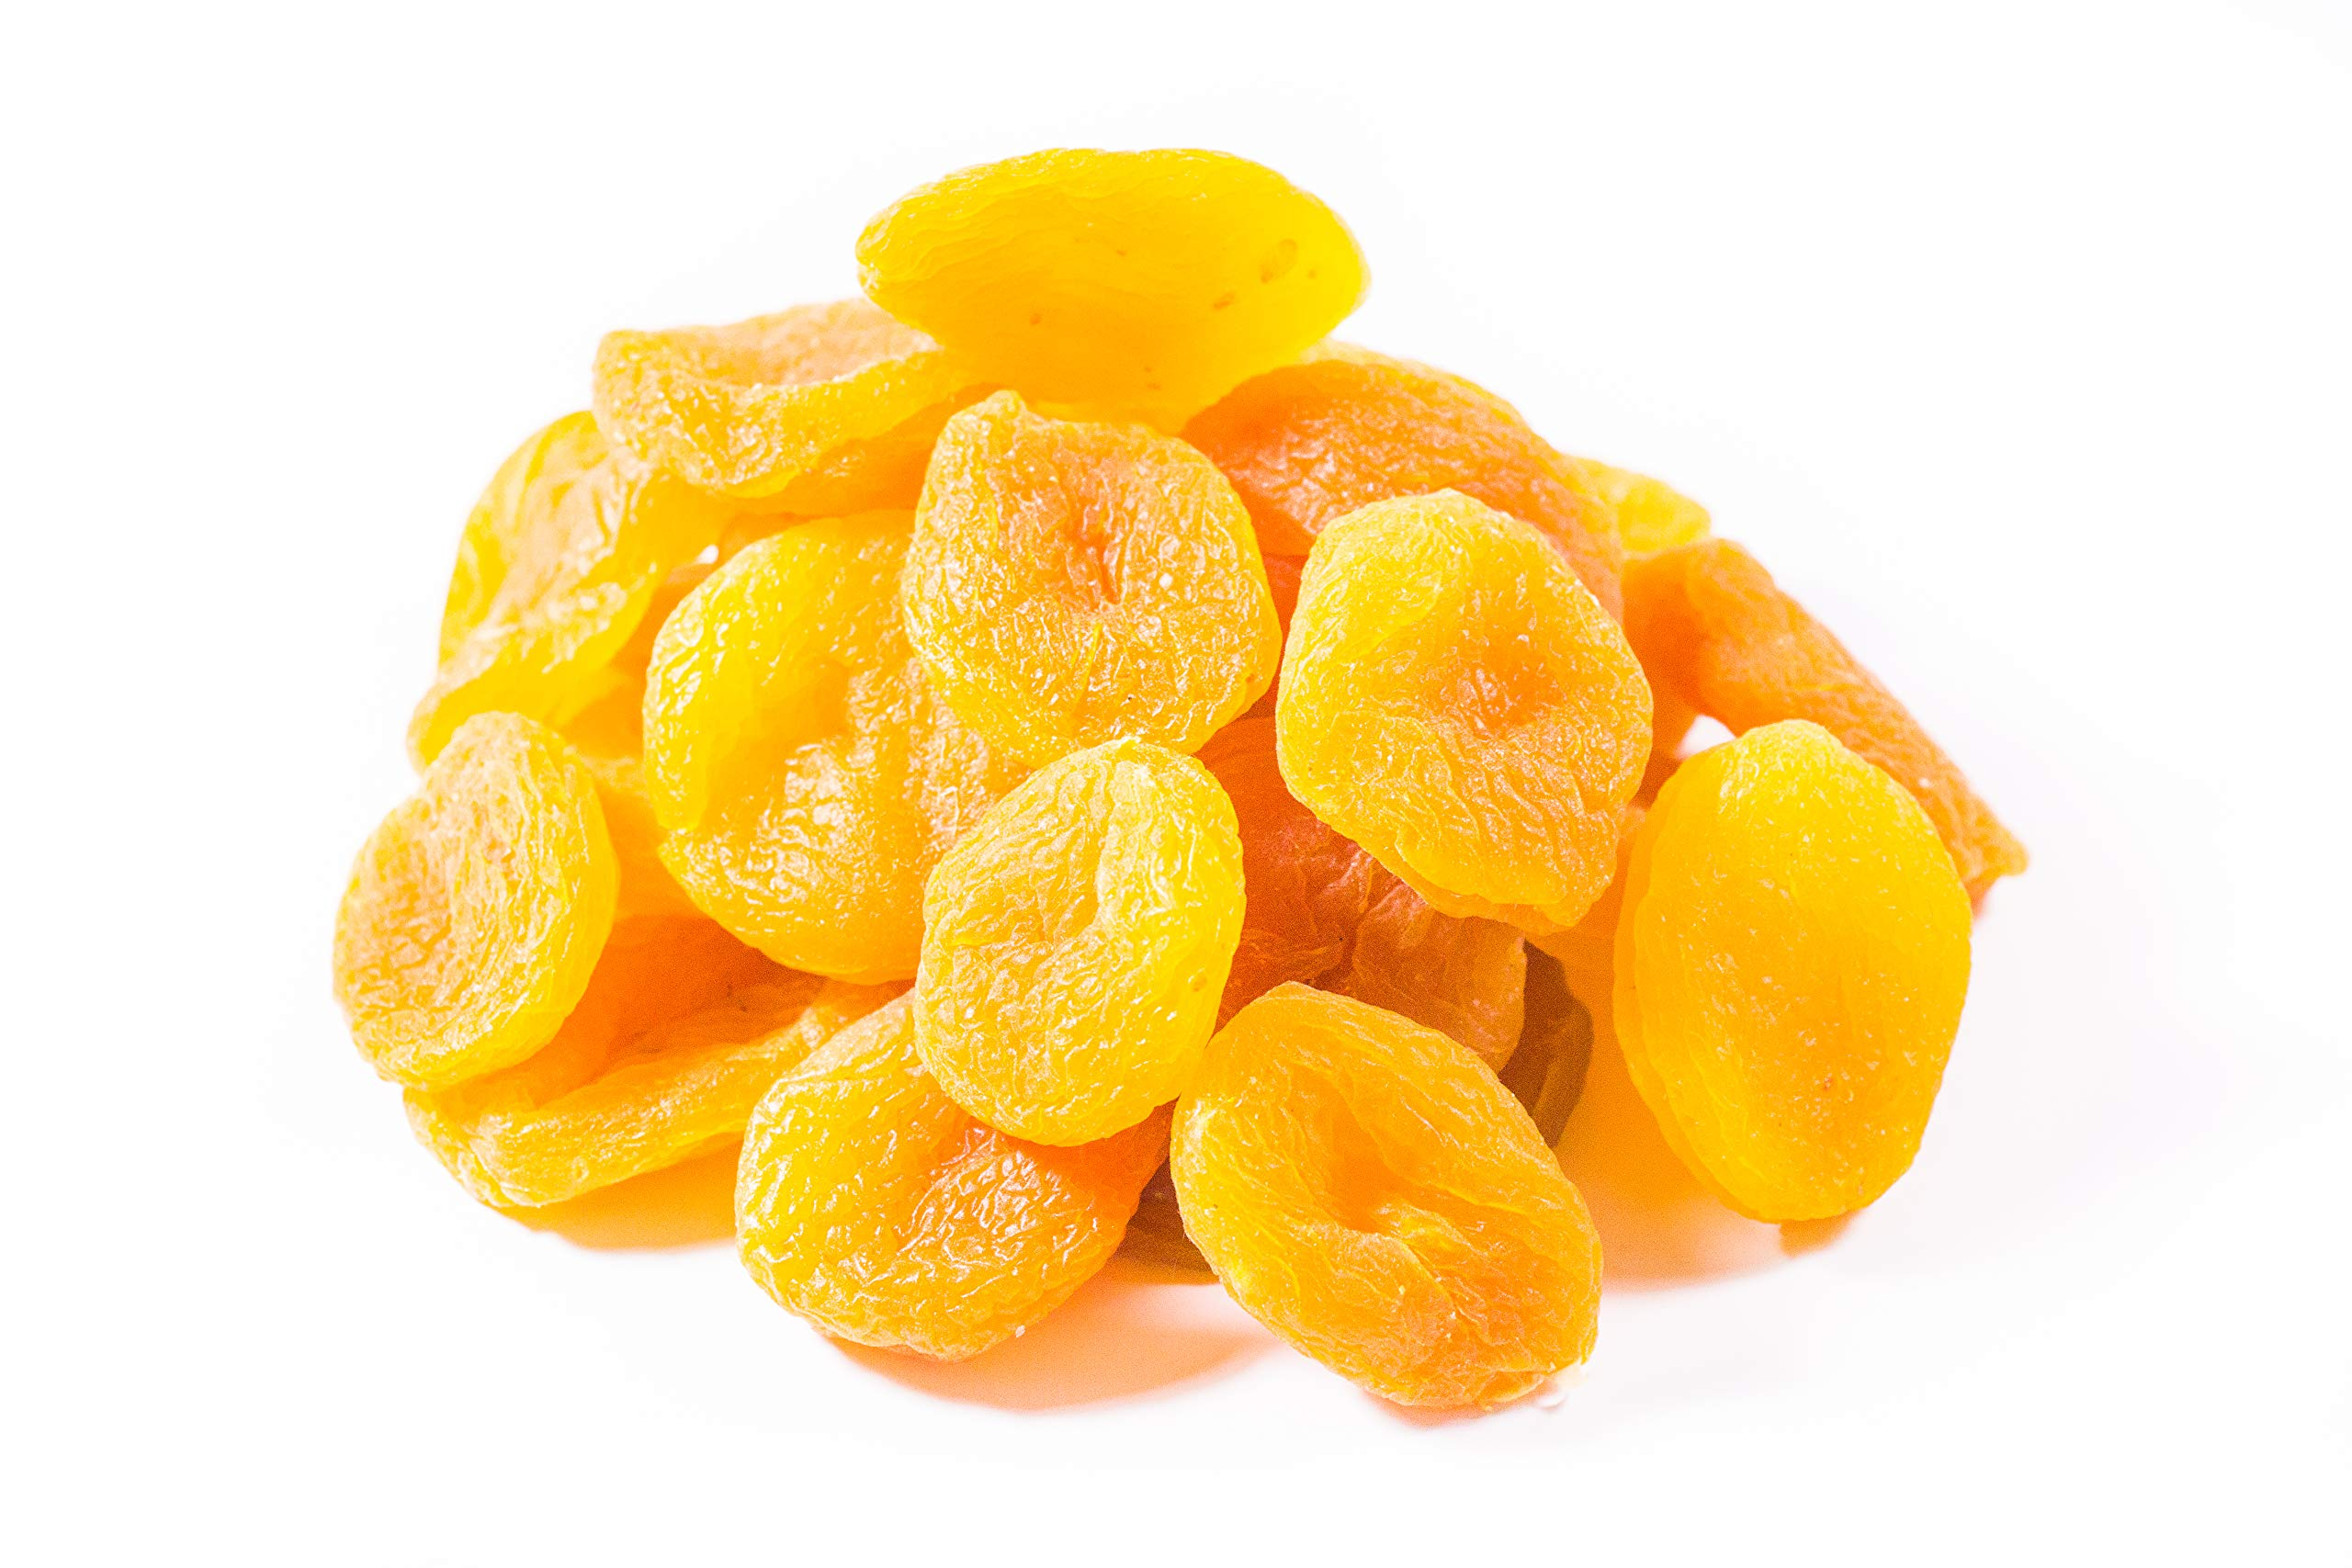 Sulfured - Bulk Sulfured Apricots 10 Pound Value Box - Freshest and highest quality dried fruit from US Based farmer market - Dried fruits for homes, restaurants, and bakeries. (10 LB)